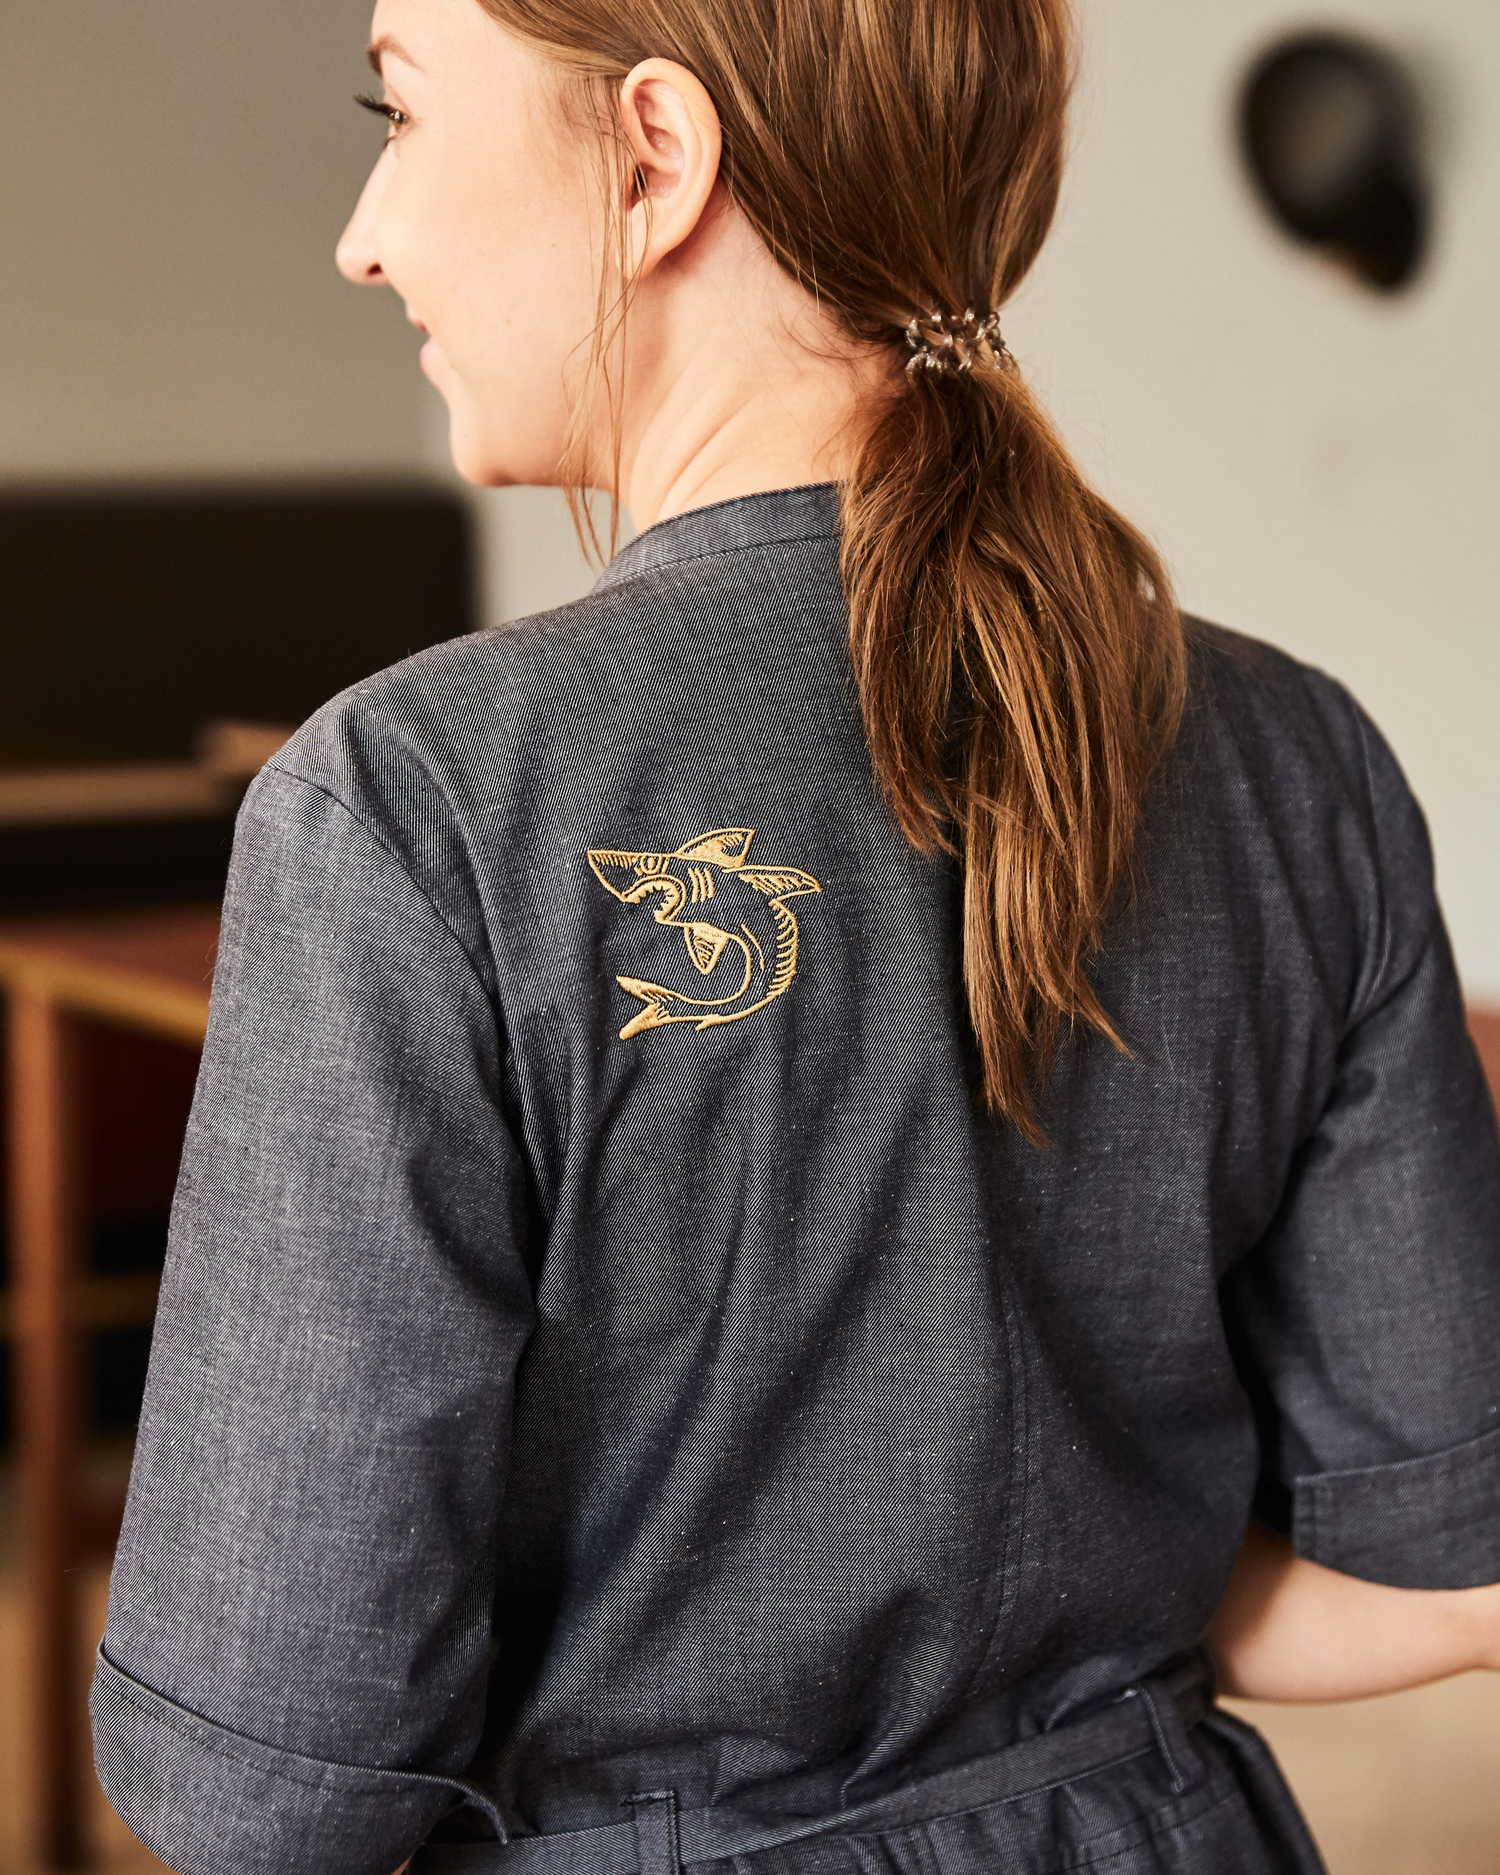 Branding and embroidered uniform by Bond for Helsinki bar and restaurant Roster